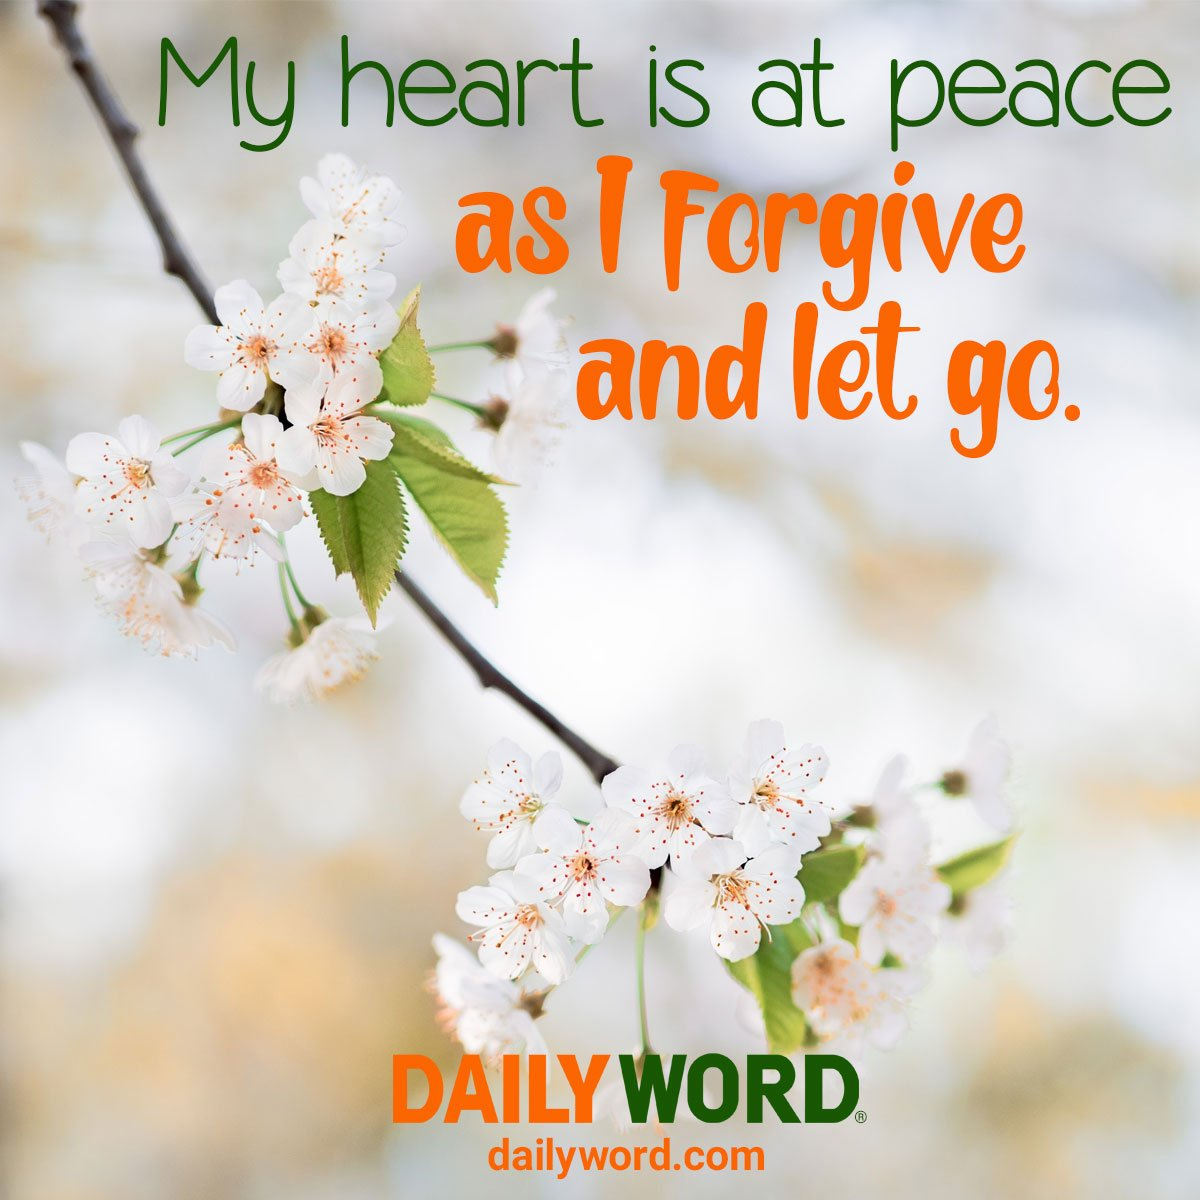 Forgive - My heart is at peace as I forgive and let go. bit.ly/2nqIL06 #forgive #peace #livingunity